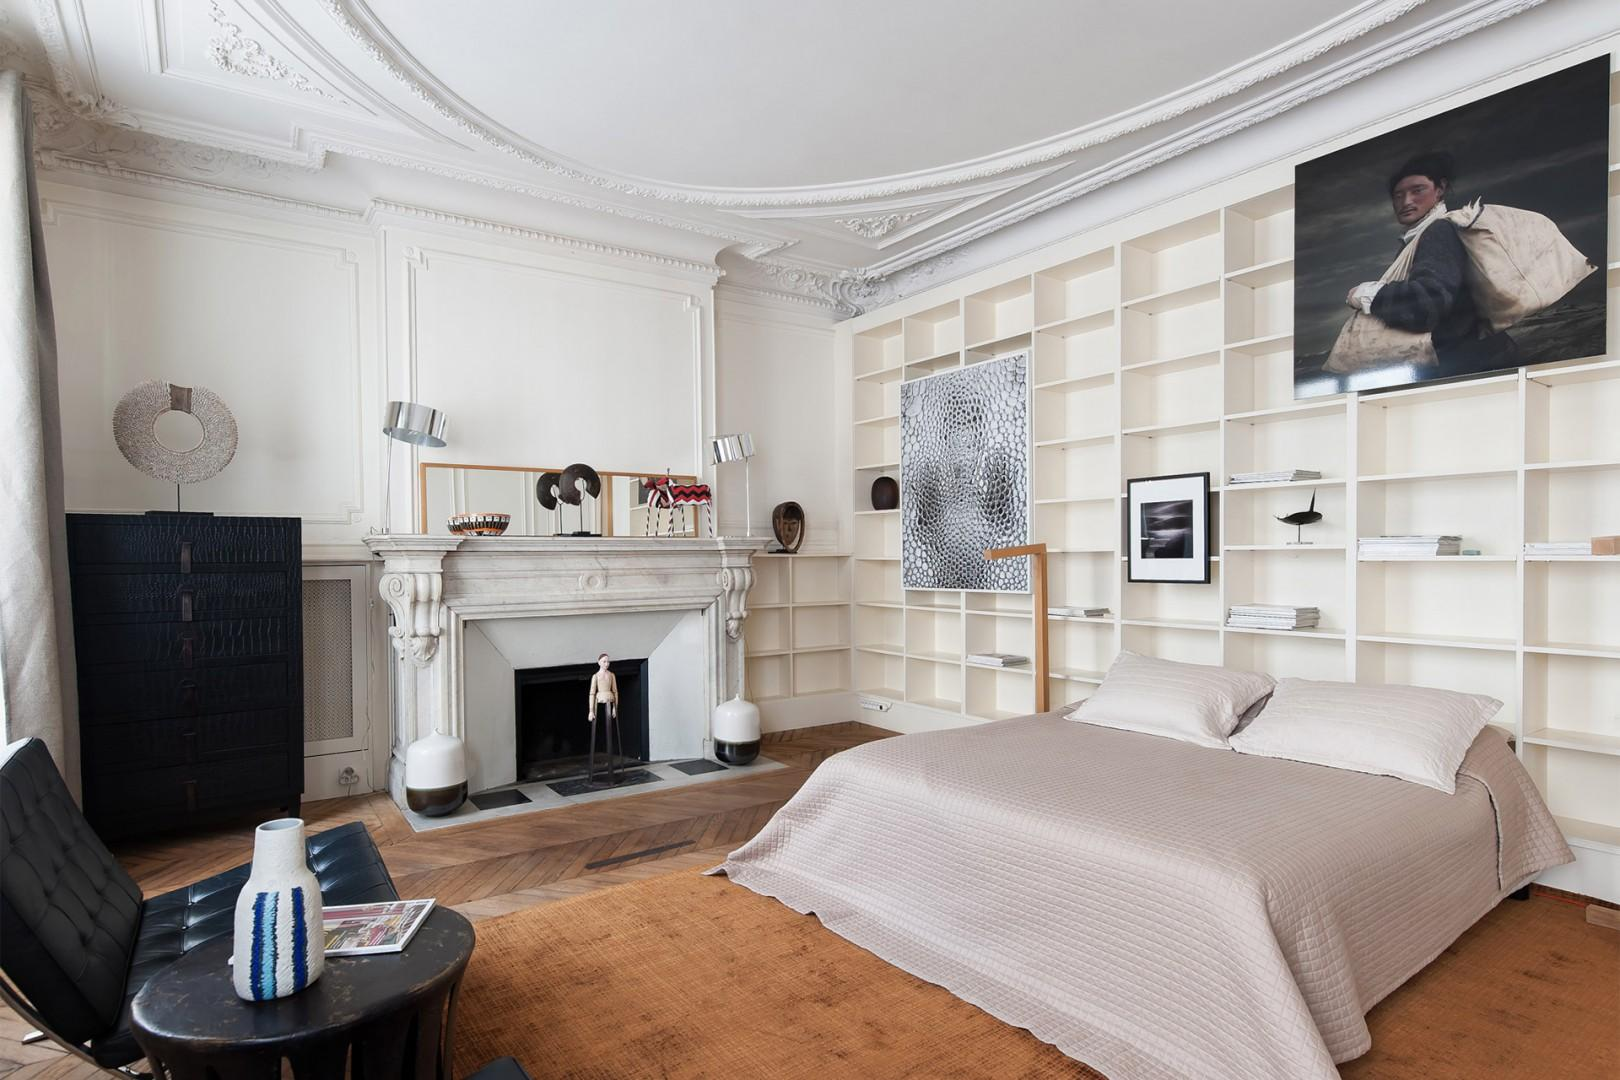 The stunning bedroom 2 has large French windows.